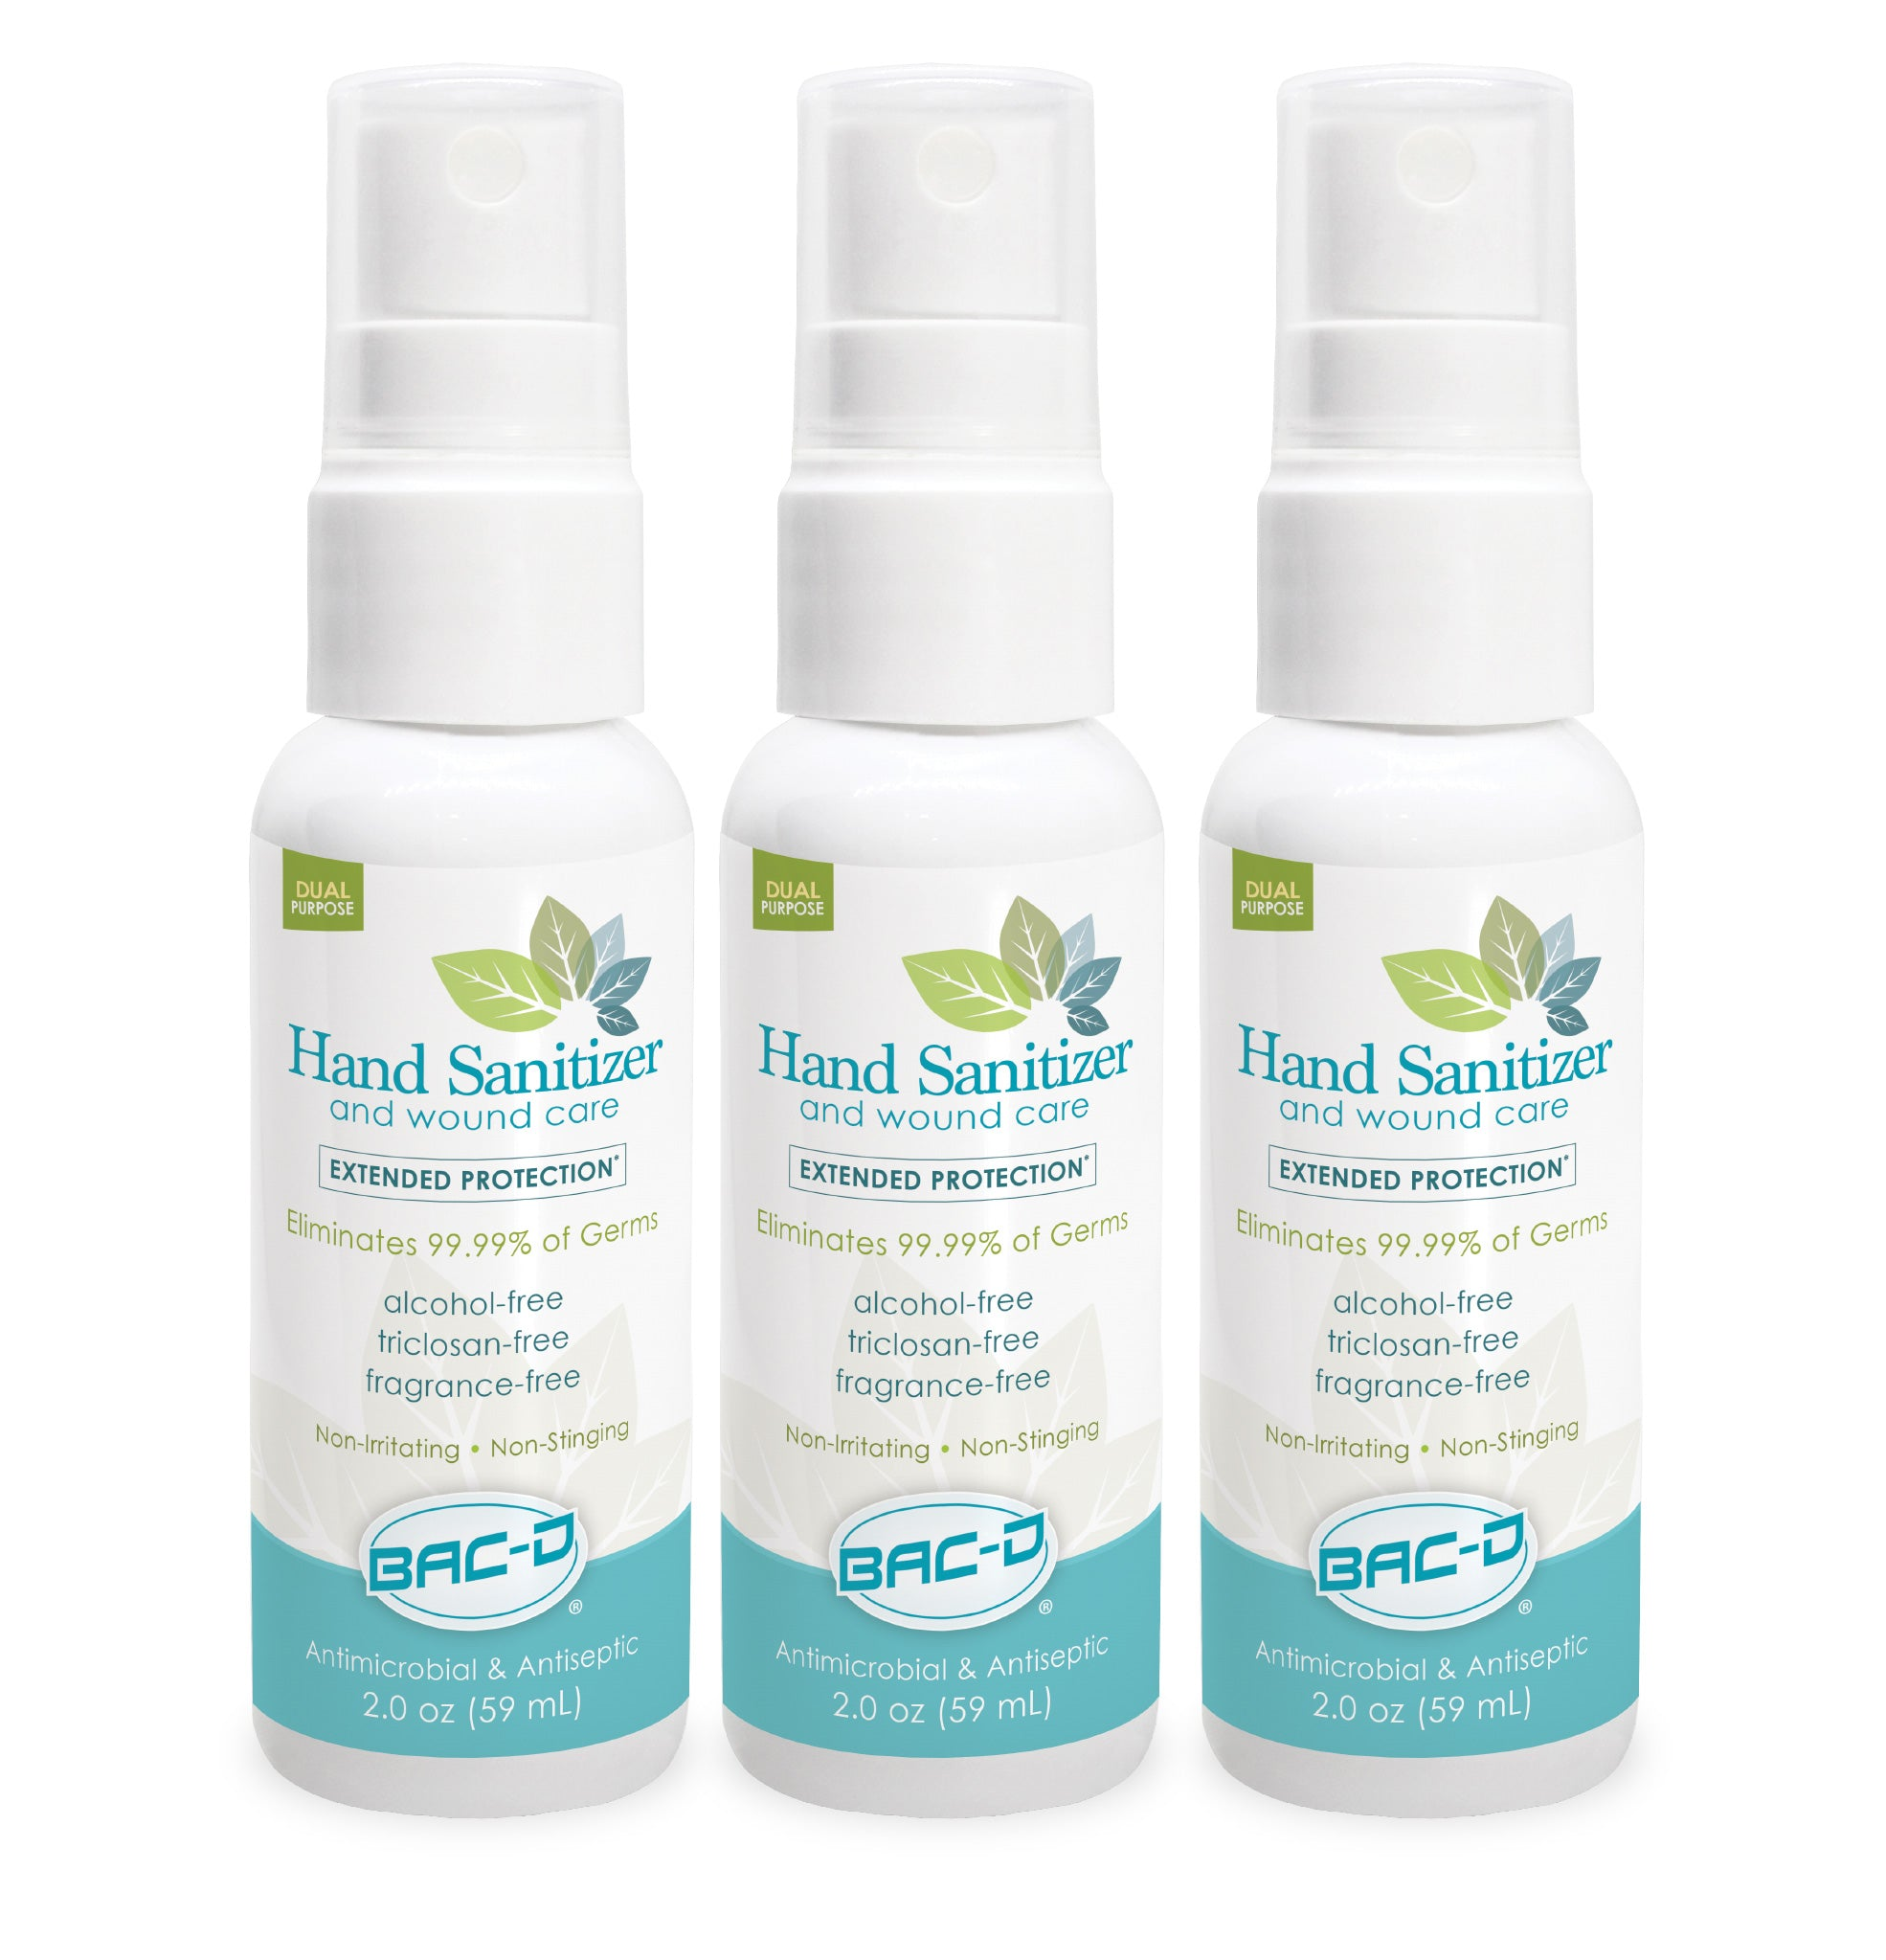 BAC-D® 2oz Spray Alcohol Free Hand Sanitizer & Wound Care - 3 Pack